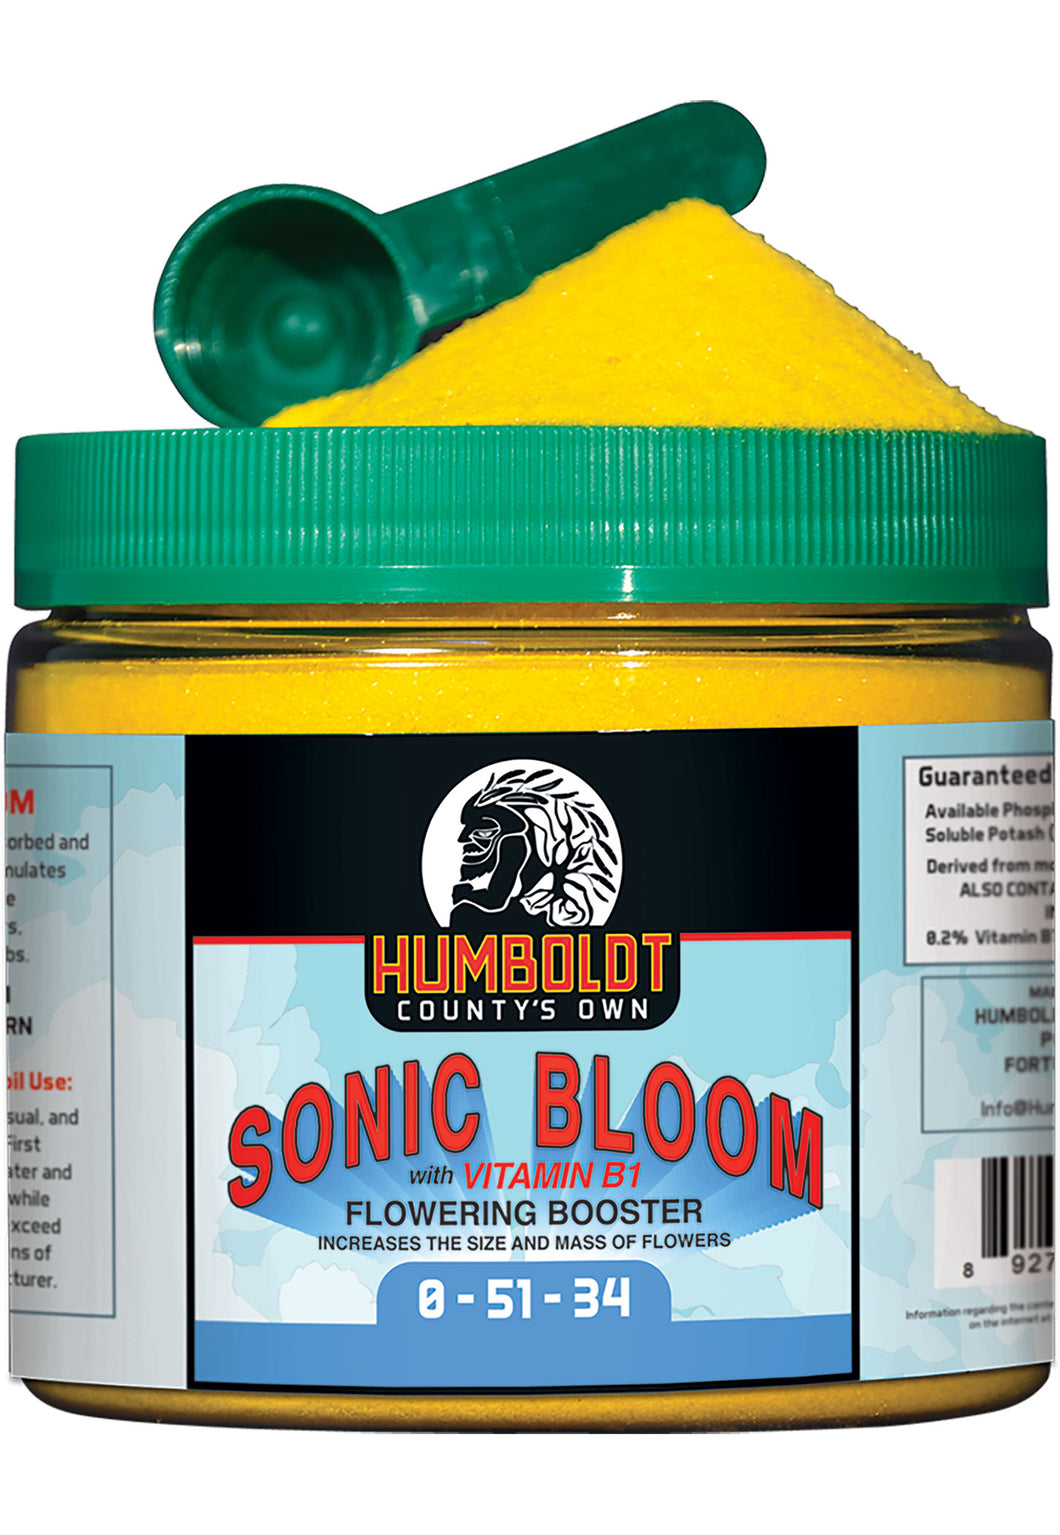 Humboldt County's Own Sonic Bloom